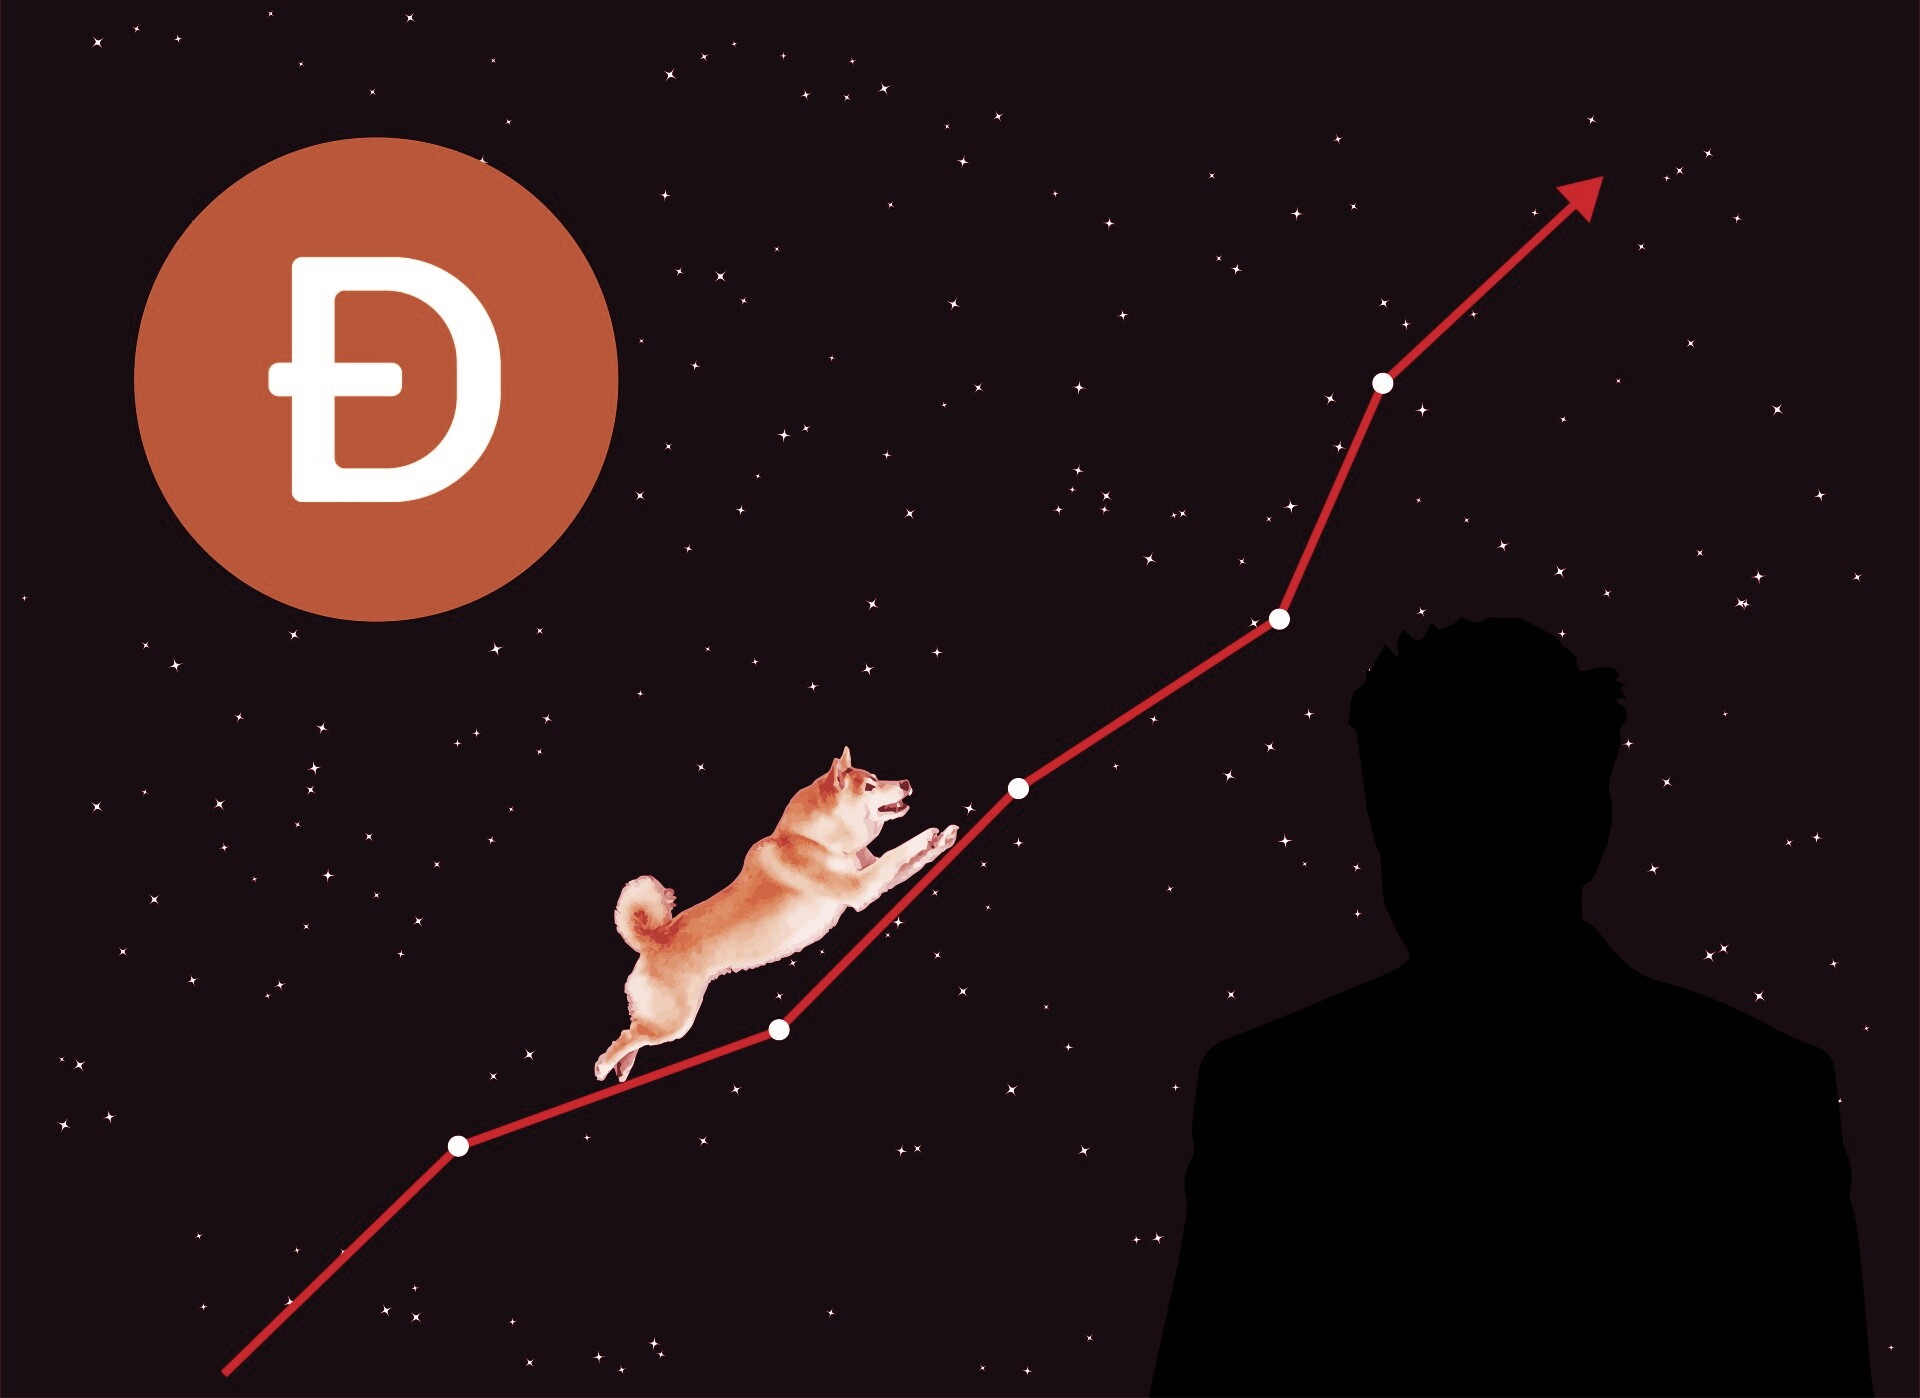 Dogecoin Price Jumps 30% After Coinbase Says It Will List Token